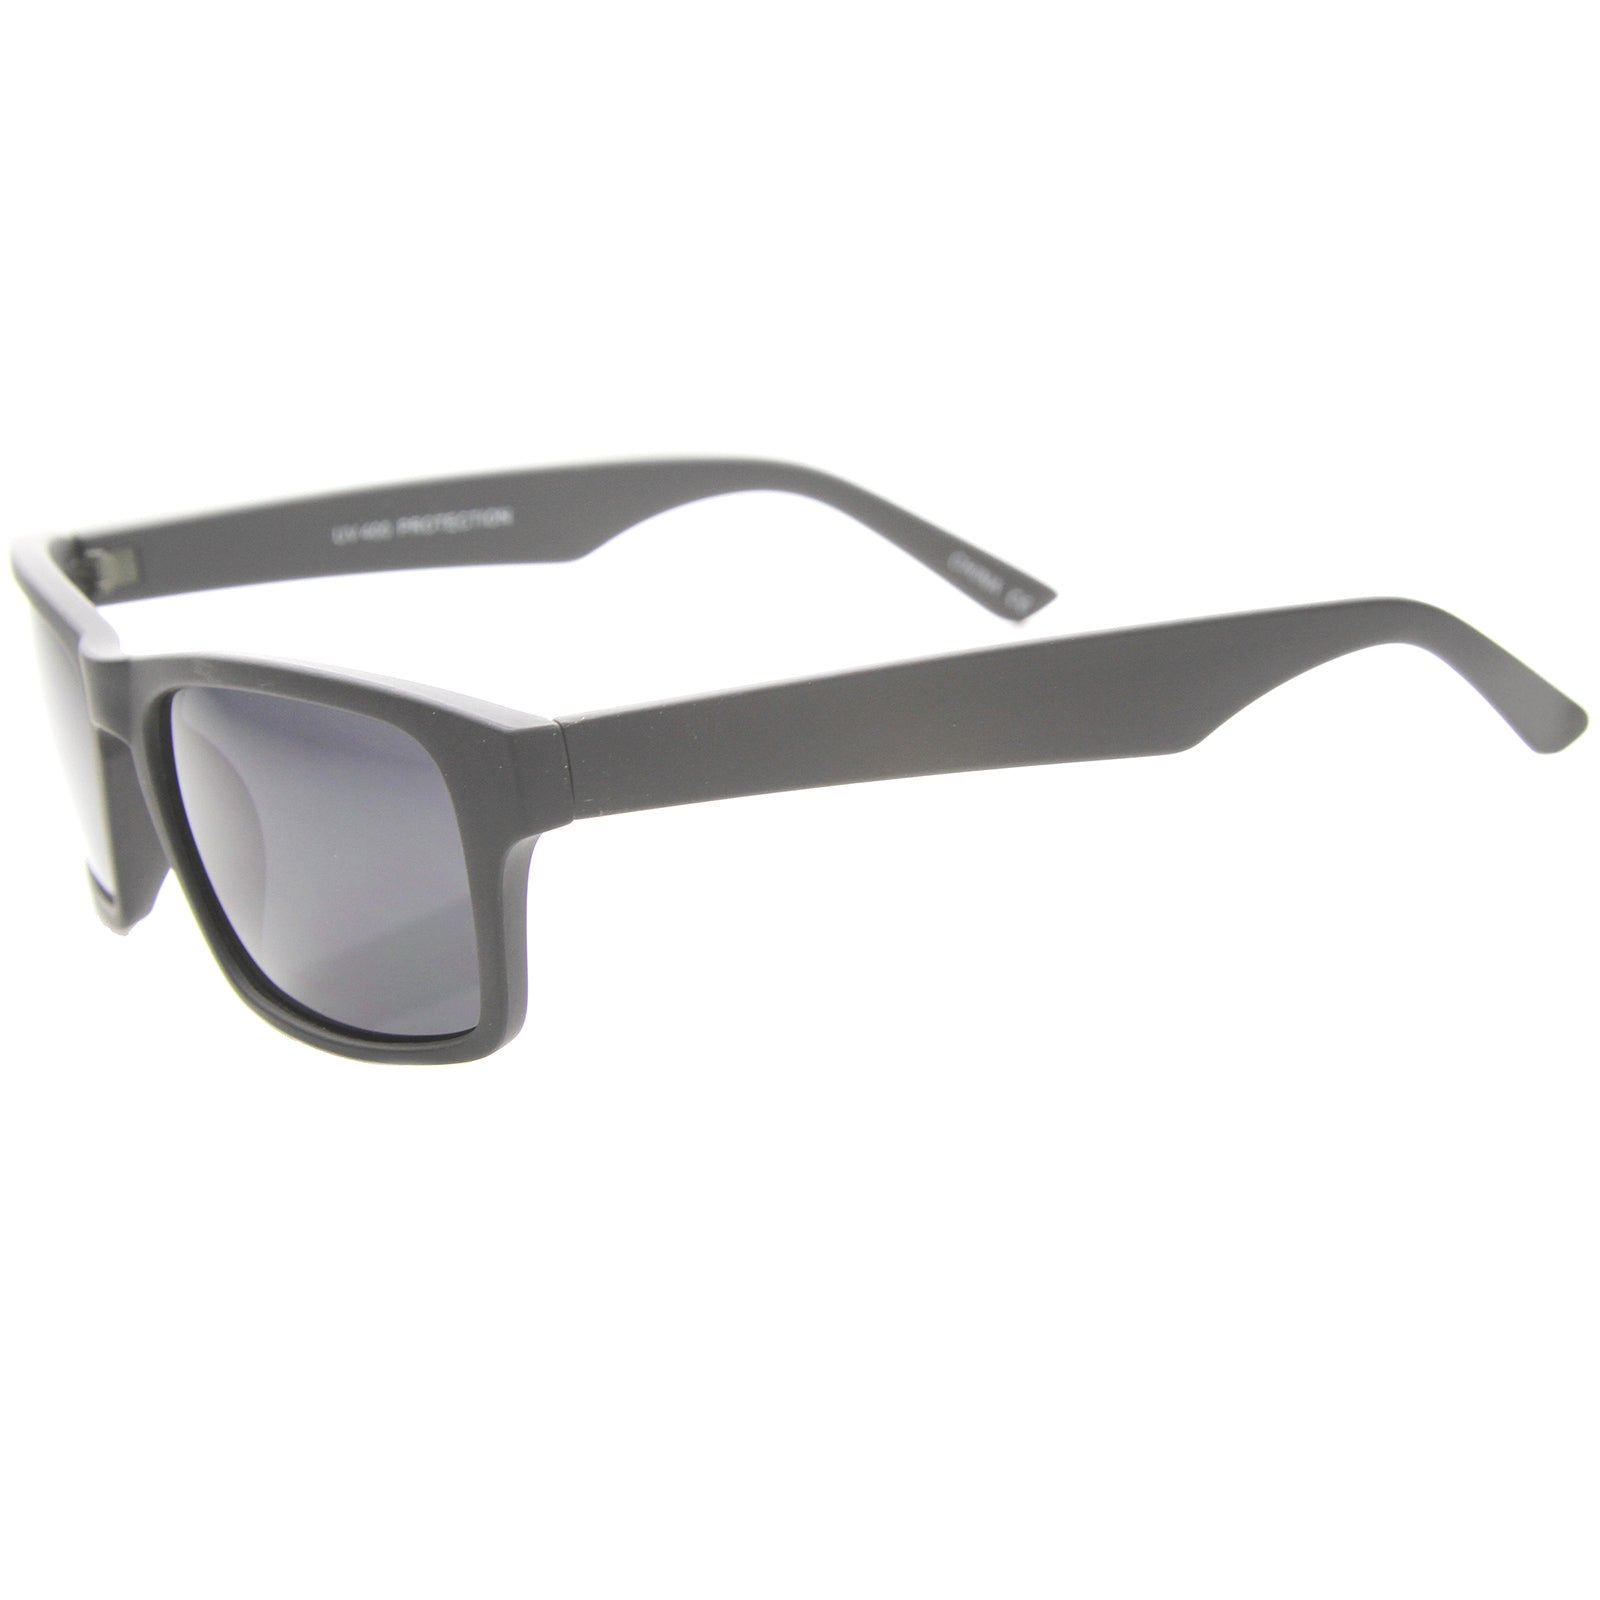 Mens Horn Rimmed Sunglasses With UV400 Protected Composite Lens - sunglass.la - 3